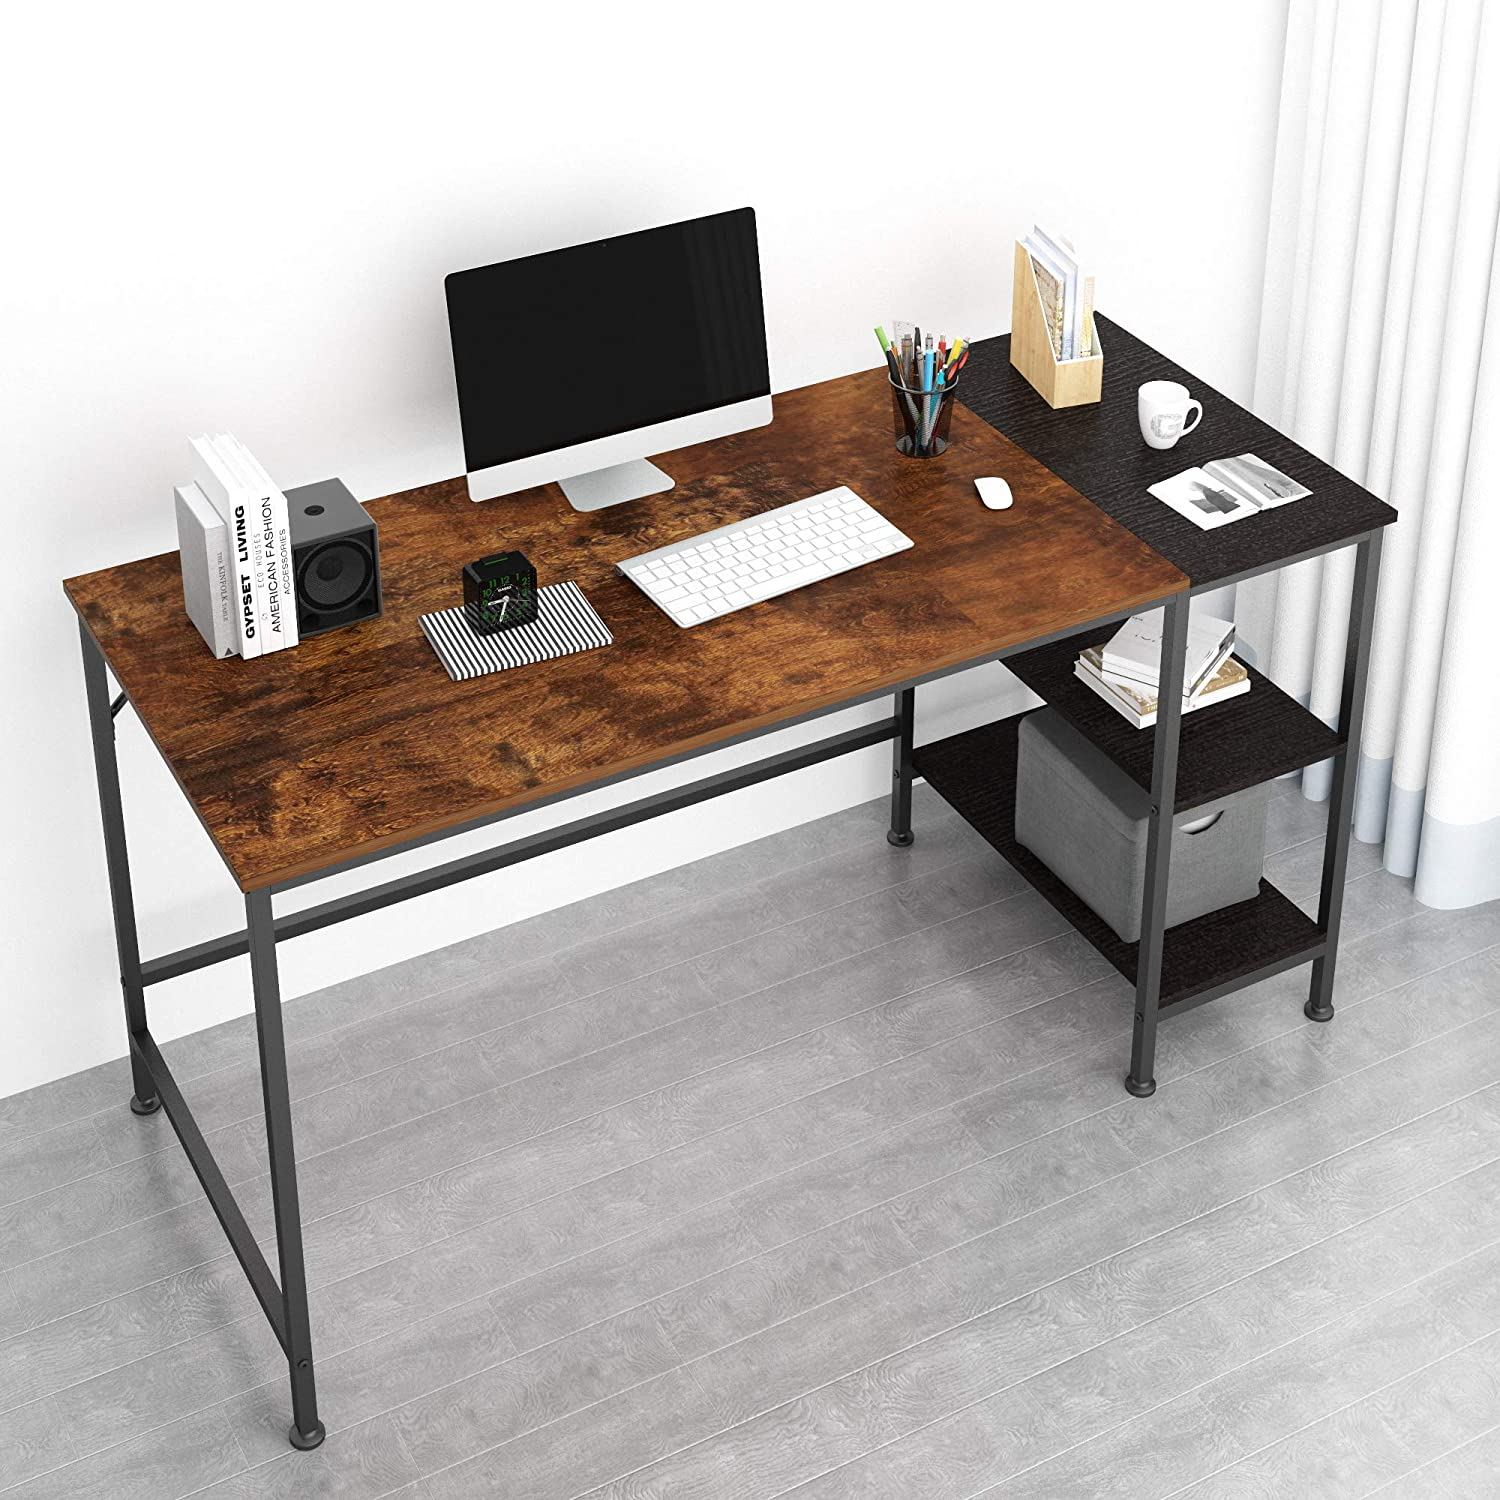 JOISCOPE Computer Desk with Shelves,Laptop Table with Wooden Drawer,55 inches(Vintage Oak Finish)